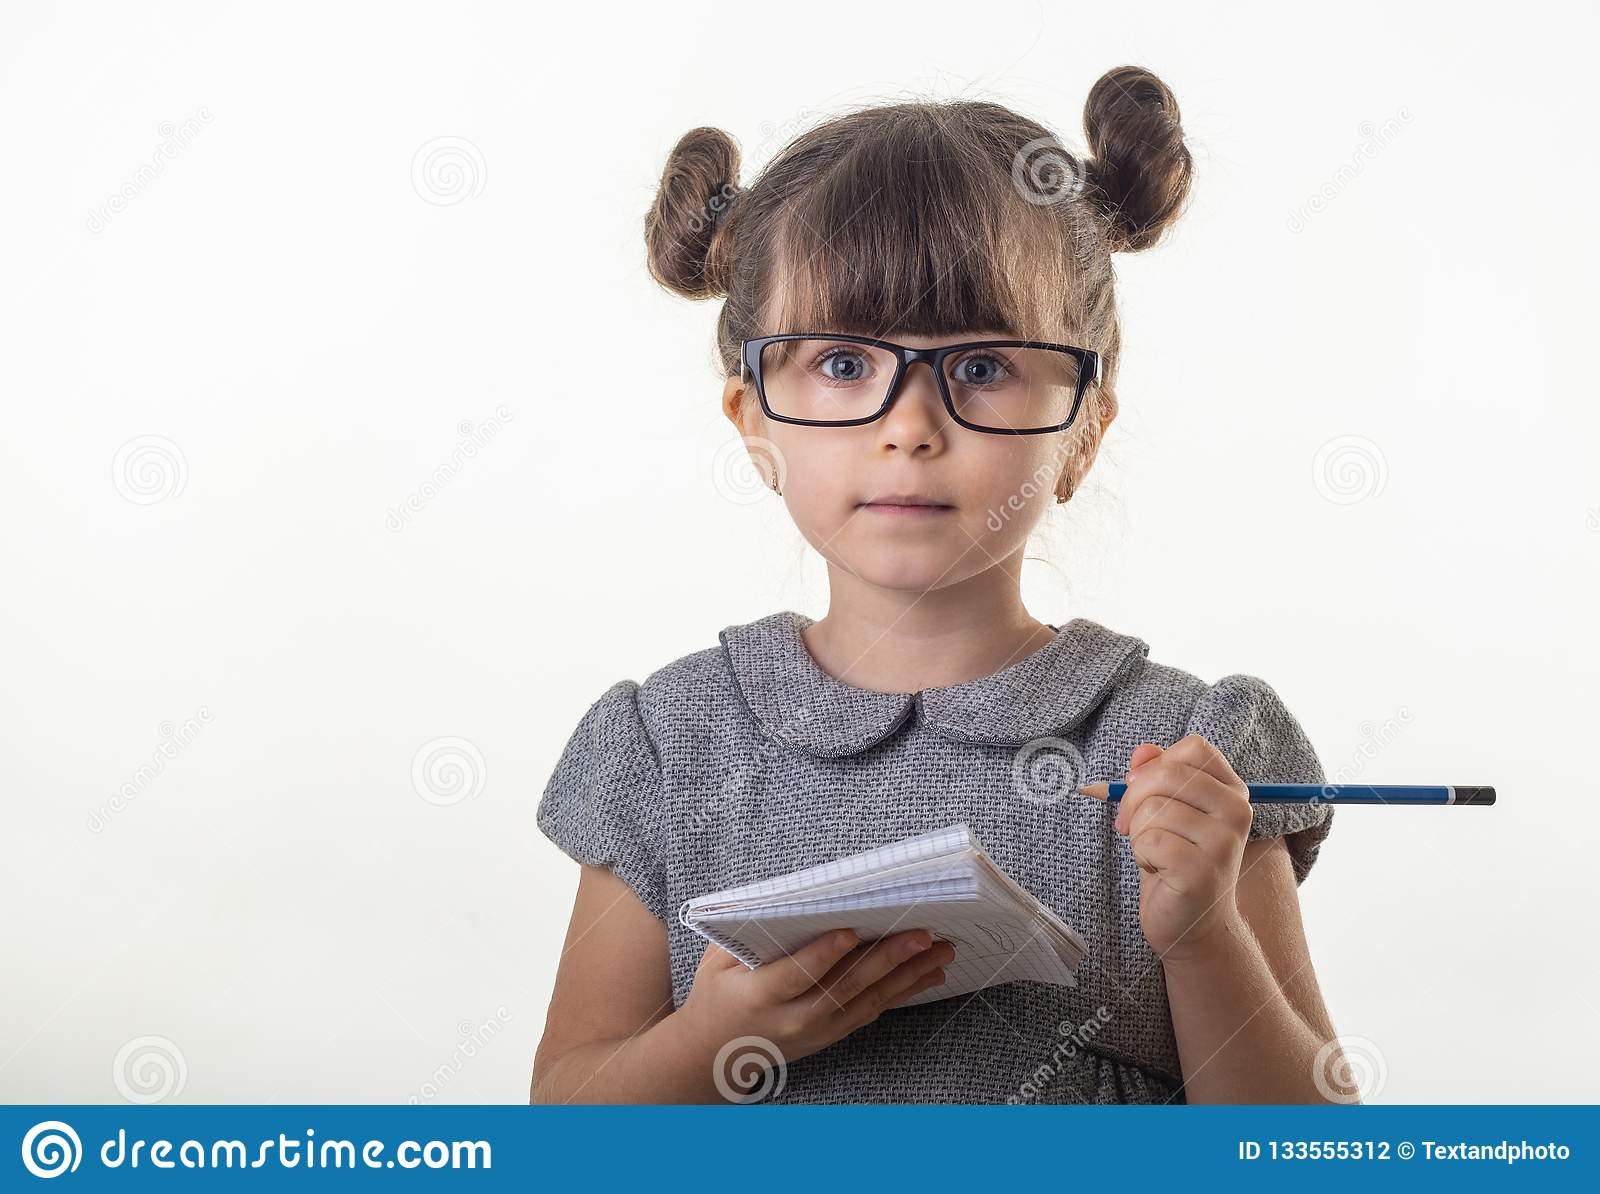 Surprised cute child in eyeglasses, writing in notebook using pencil, keeping mouth wide open.